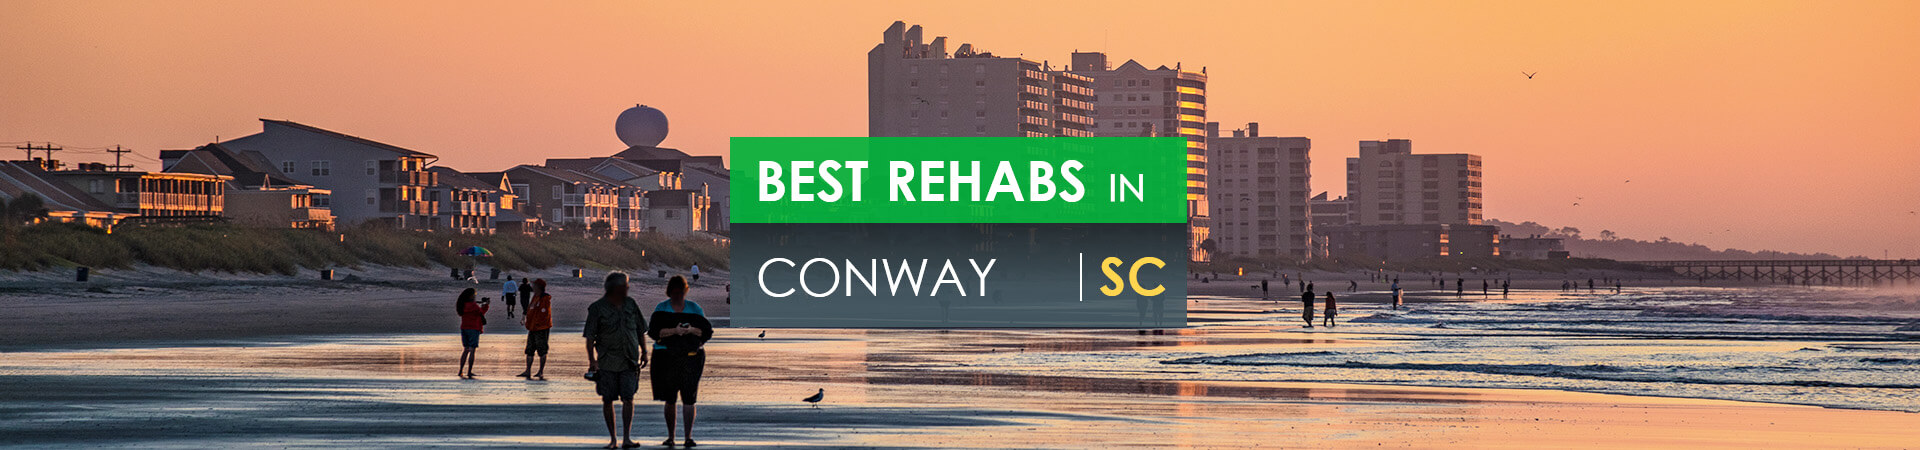 Best rehabs in Conway, SC